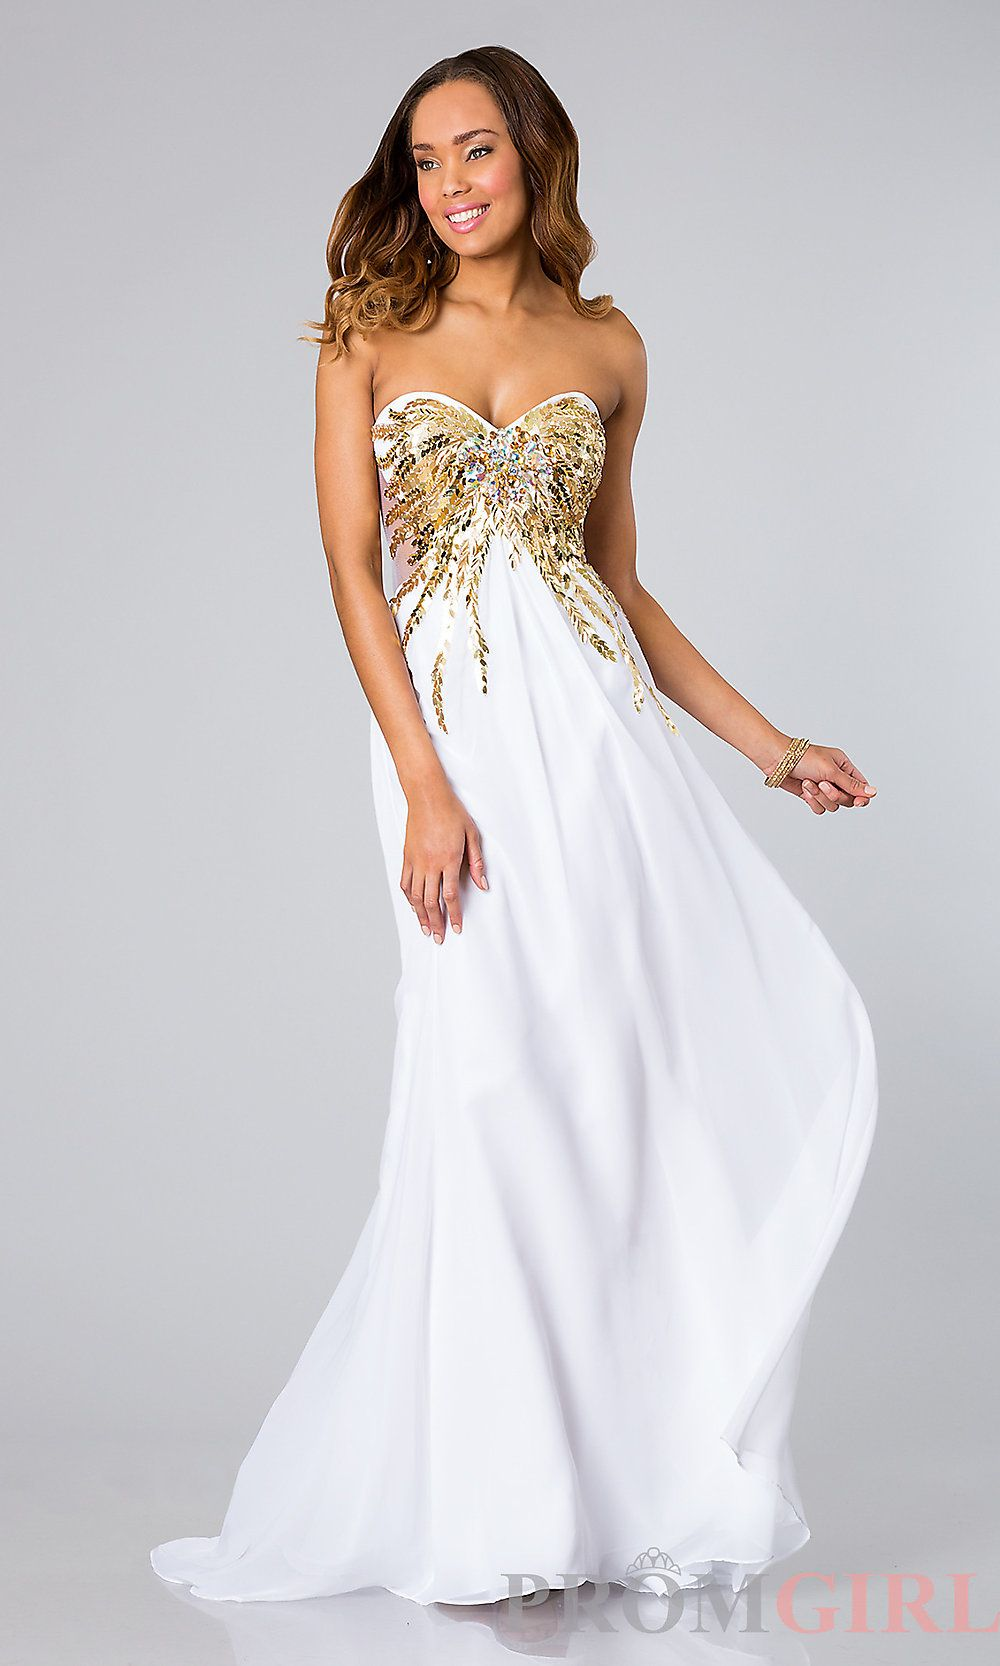 gold dresses and White prom